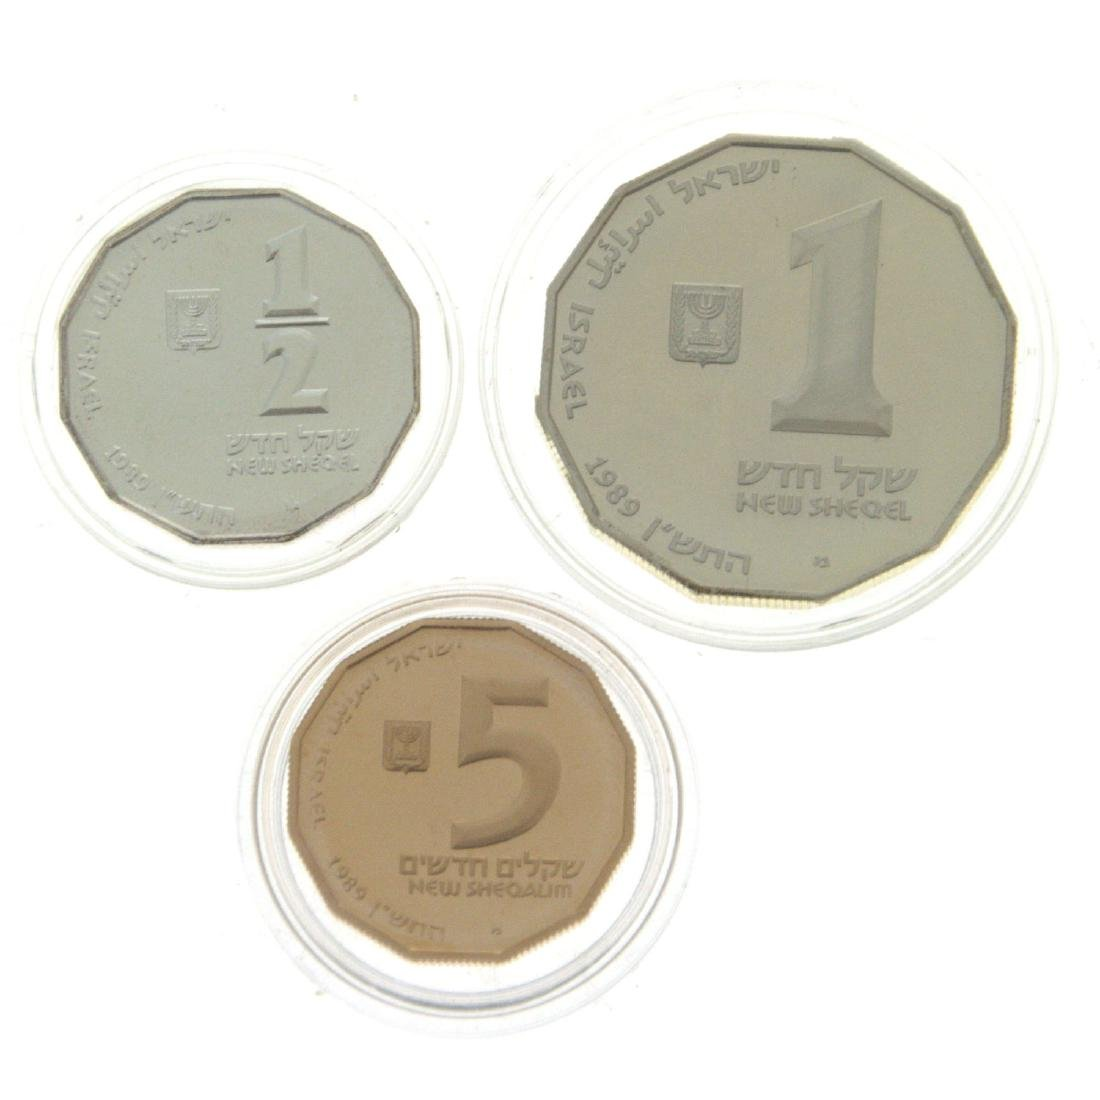 Jaffa Gold and Silver Coin Set.